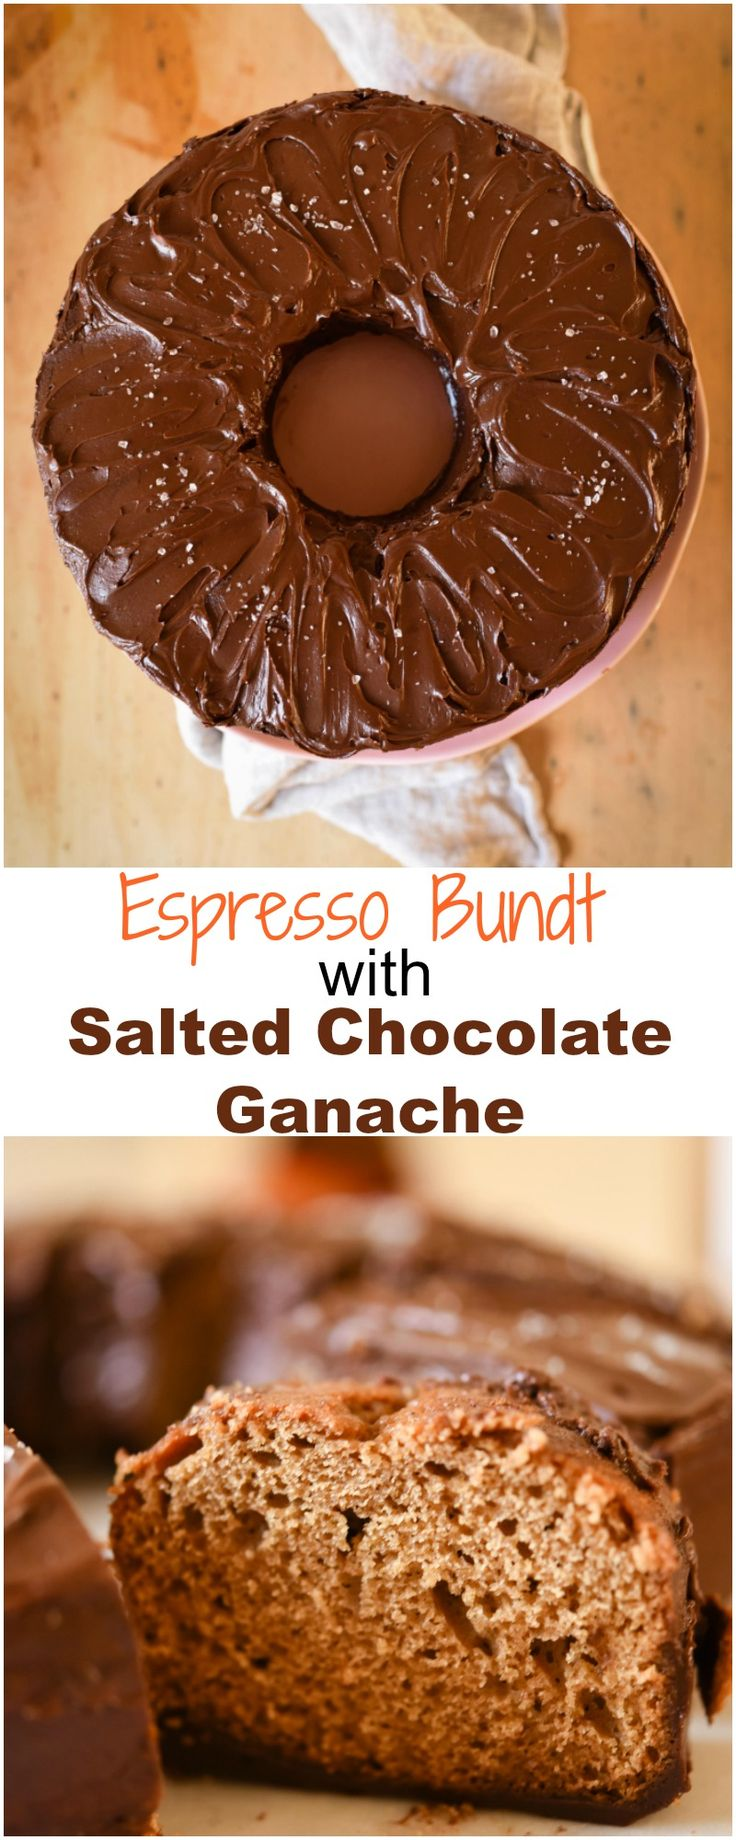 Espresso Bundt with Salted Chocolate Ganache | Patisserie Makes Perfect